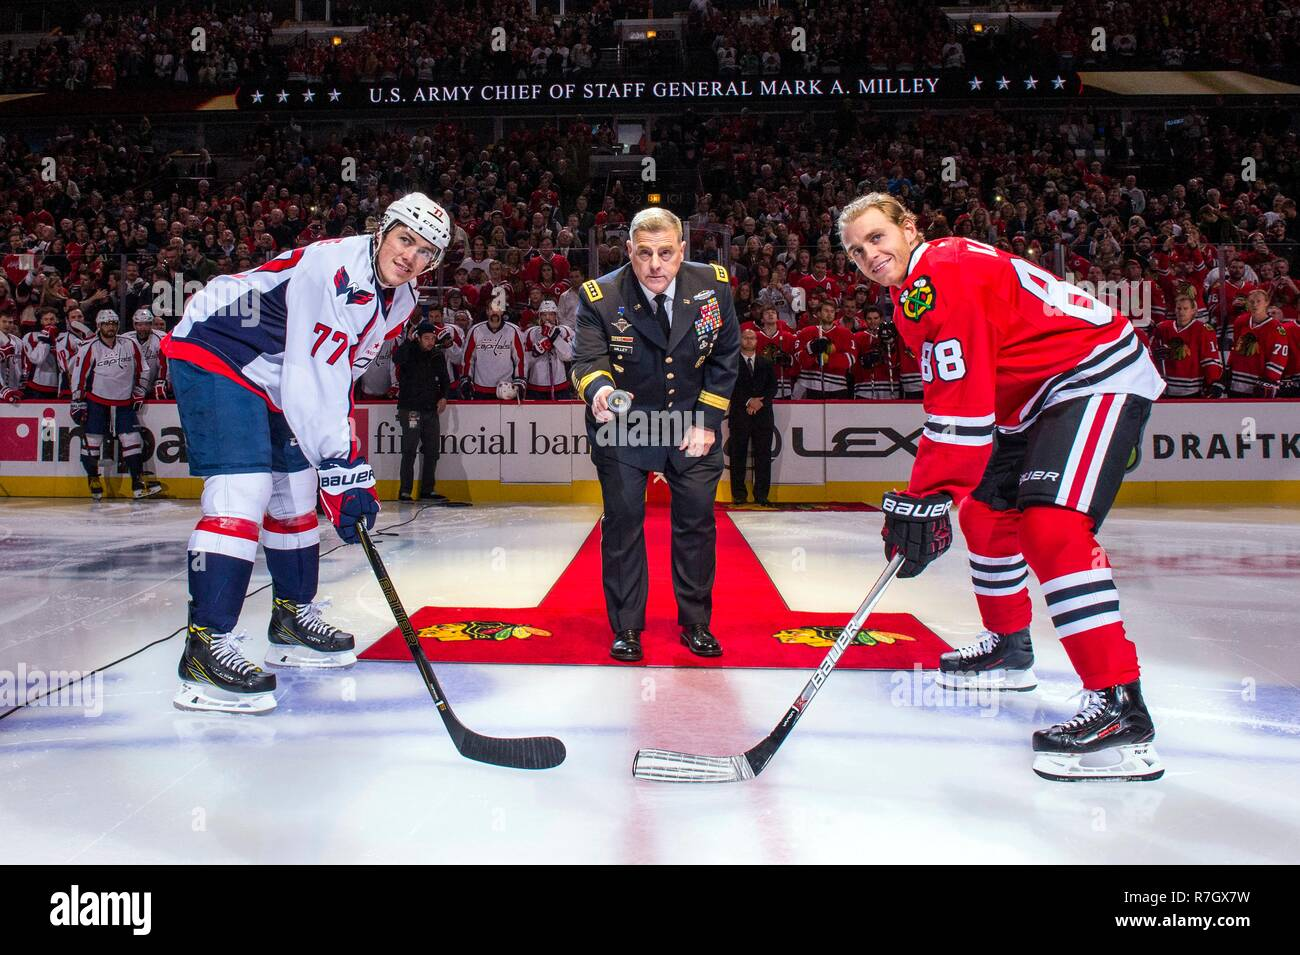 968d116de5f U.S. Army Chief of Staff Gen. Mark Milley prepares to drop the puck to start